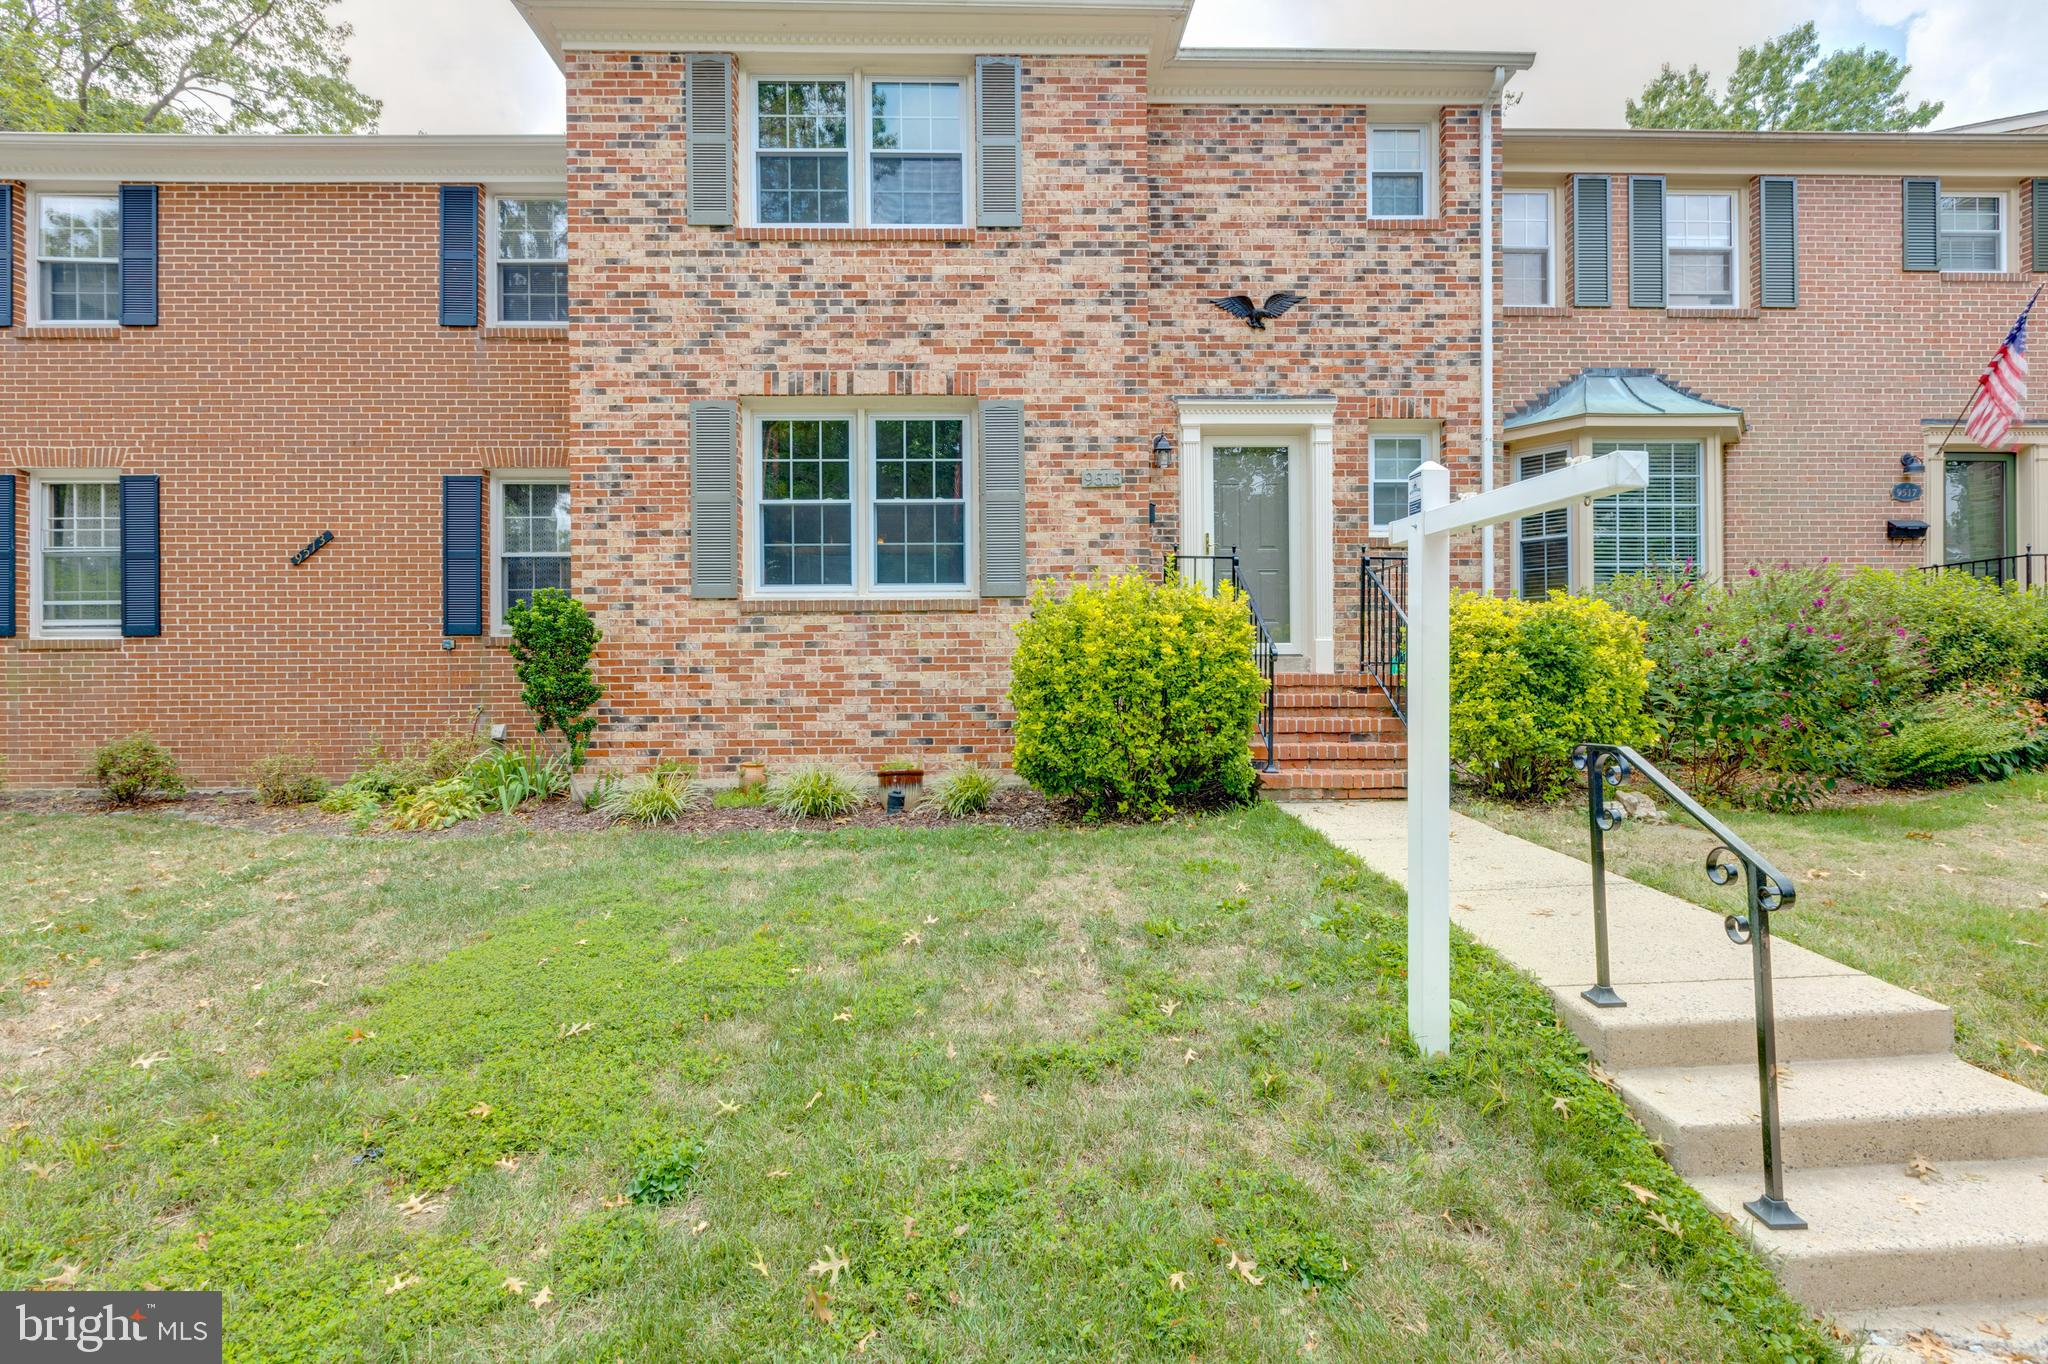 Come see this beautifully updated spacious town home. From the large back yard to the open and updated kitchen. All that's left is to move right in. Enjoy 3 spacious bedrooms upstairs, hardwoods and tile on the main floor and a huge open basement with wet bar and fireplace.  We have it all! Fantastic convenient location just off of the Fairfax County Parkway.